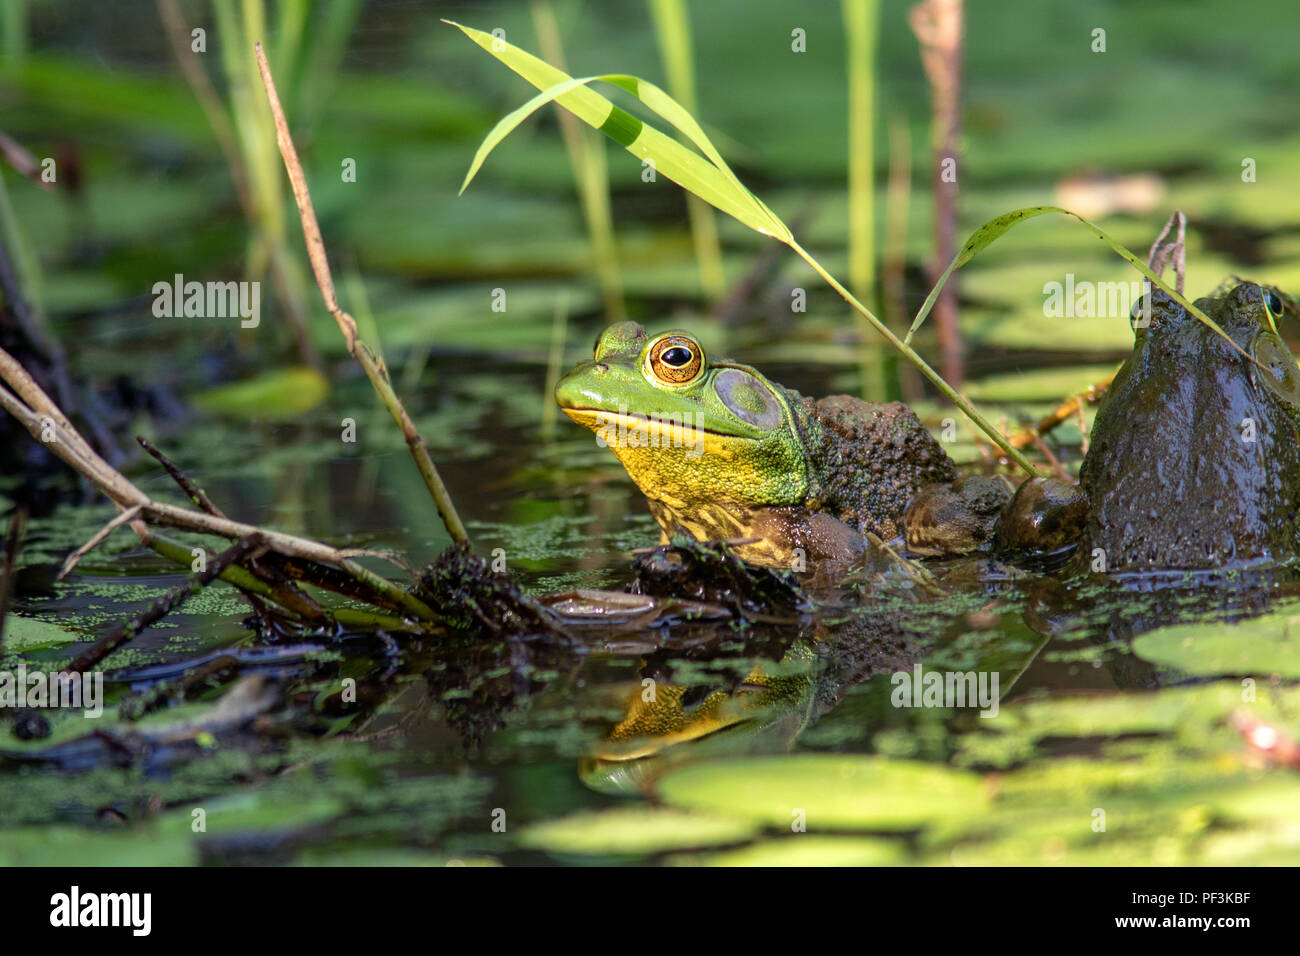 American Bullfrog (Lithobates catesbeianus) - Indian Point Trail - Il Giardino degli dèi, Shawnee National Forest, Illinois, Stati Uniti d'America Foto Stock